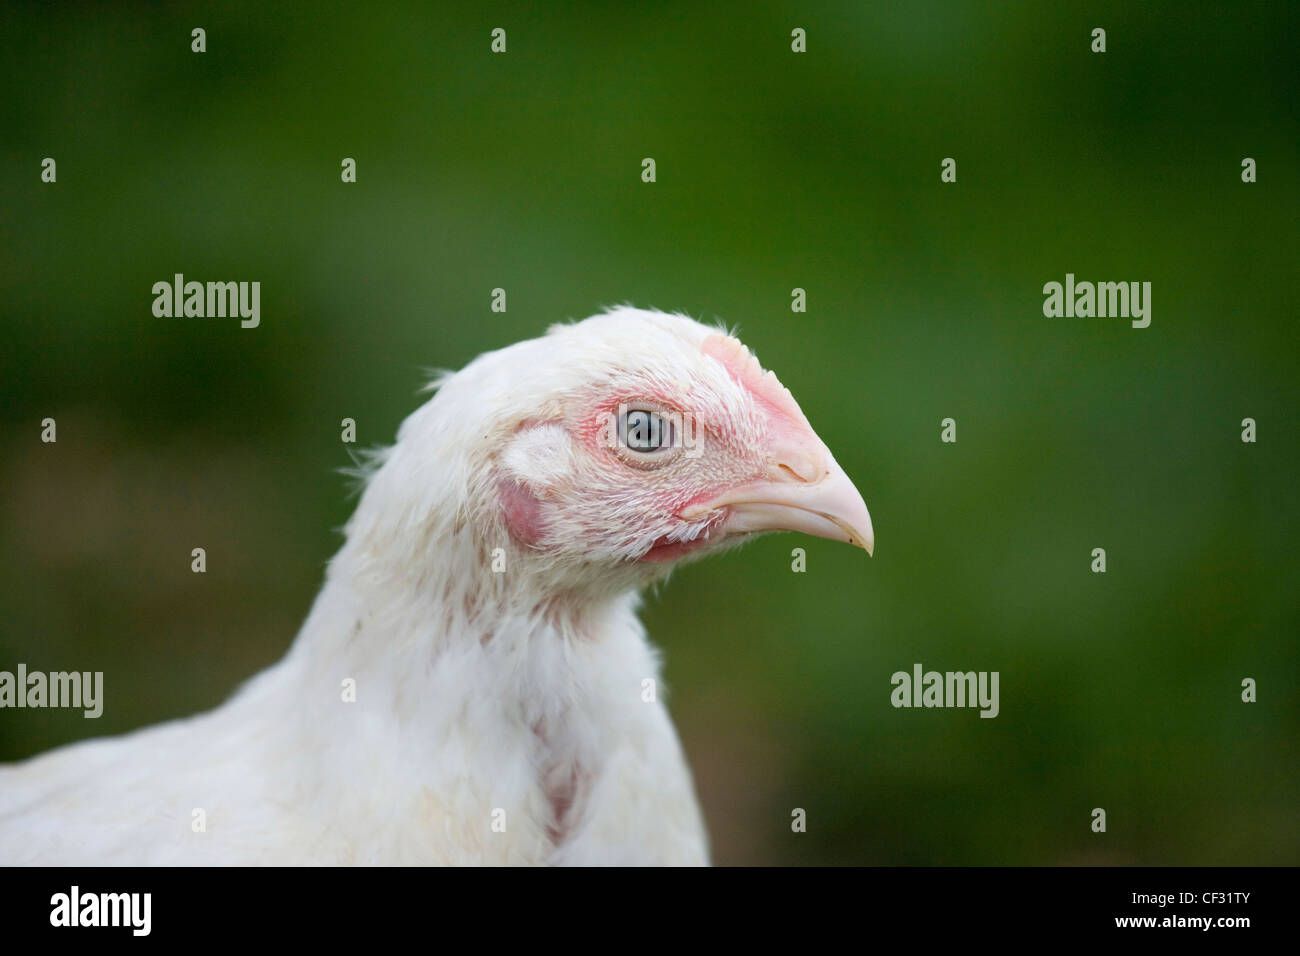 English Breed Chicken Stock Photos & English Breed Chicken